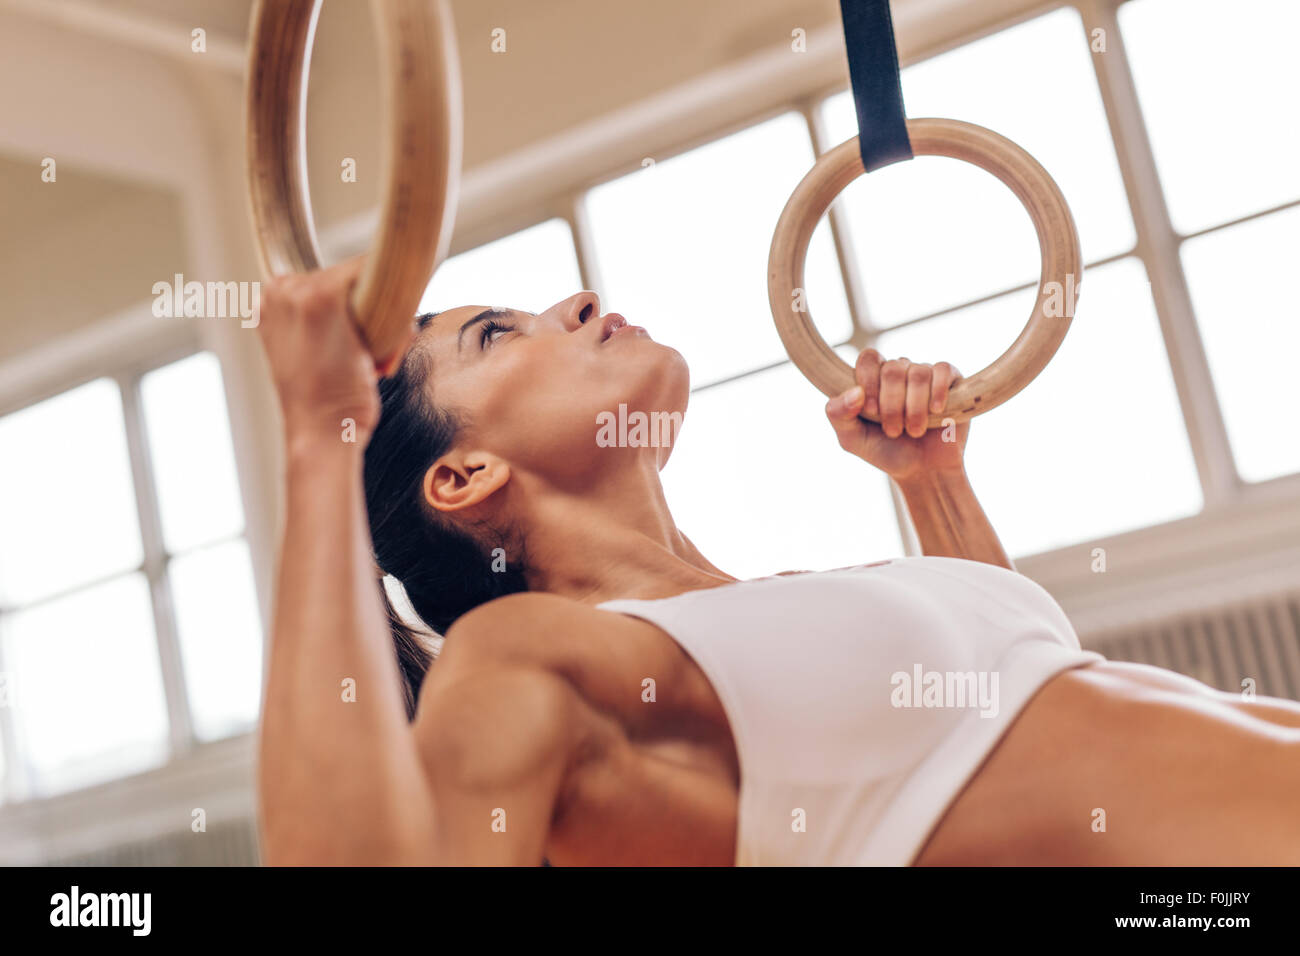 Close up shot of strong young woman doing pull-ups with gymnastic rings. Fitness female athlete exercising at gym. - Stock Image